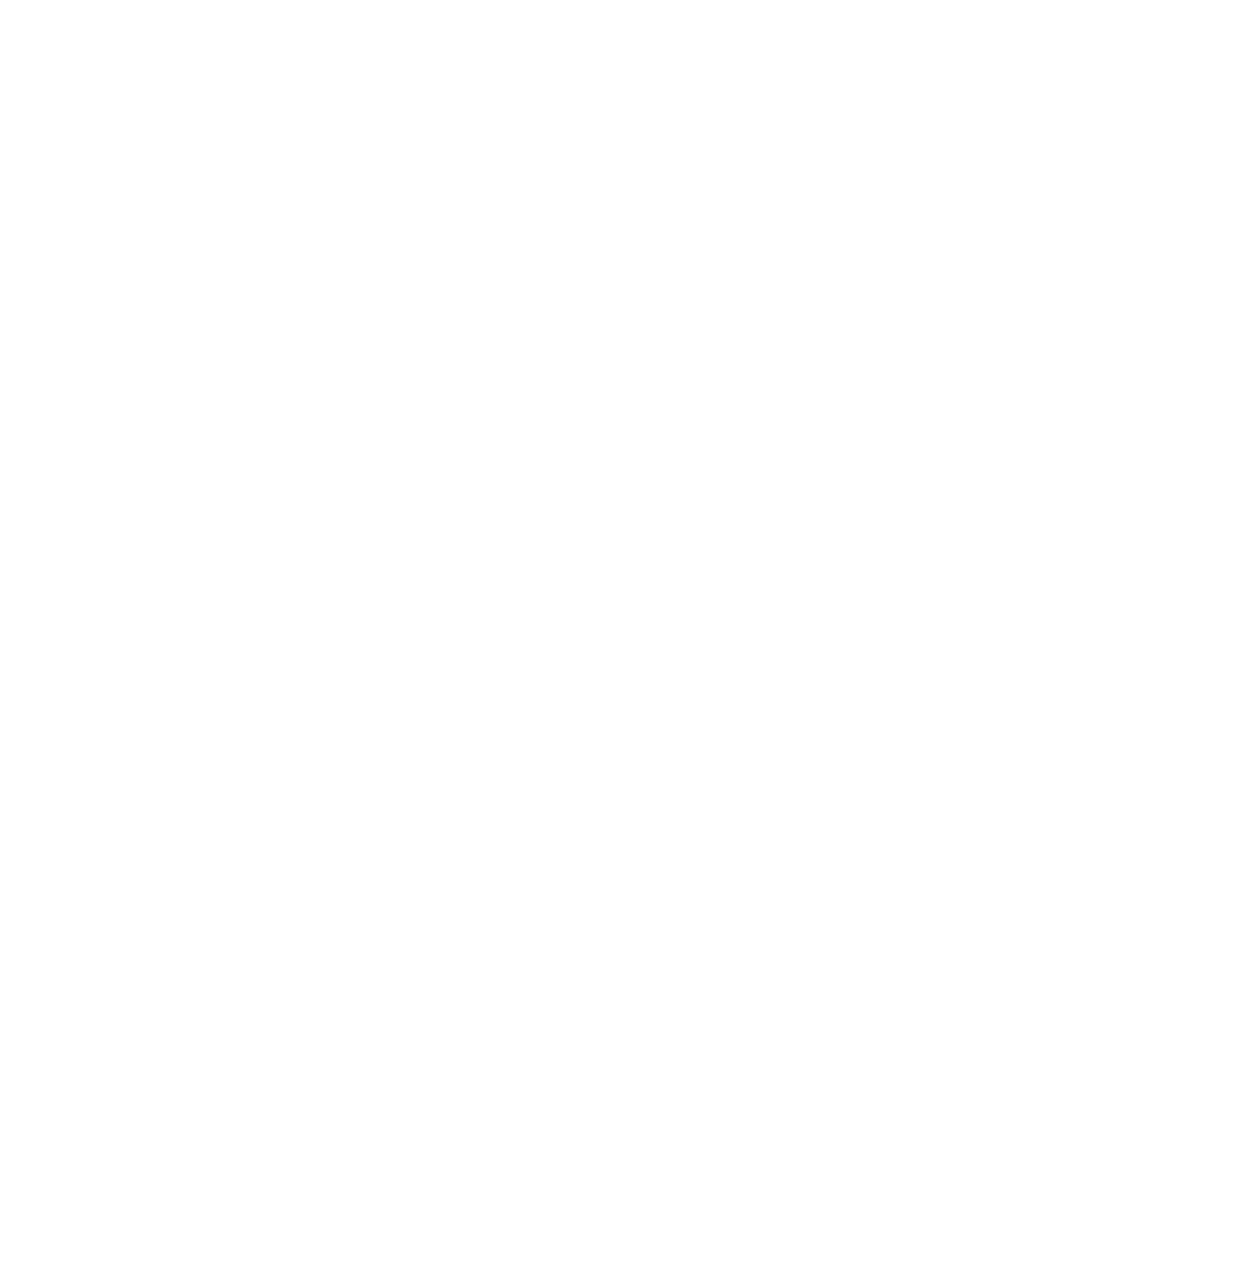 SEXHUM: MIGRATION, SEX WORK AND TRAFFICKING